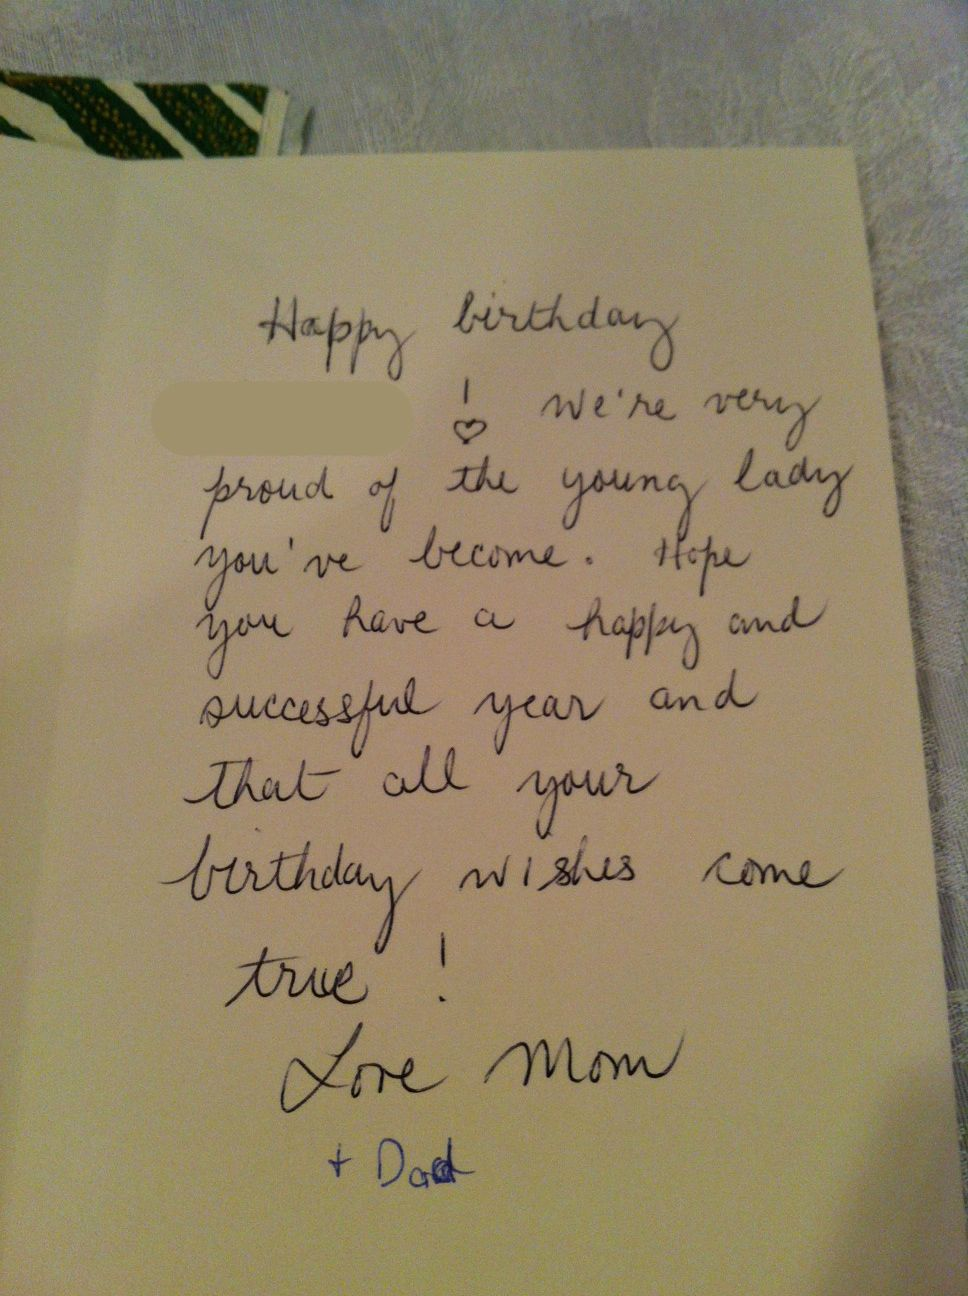 Damnit Dad You Only Had One Thing To Write Dad Birthday Card Funny Birthday Cards Birthday Cards